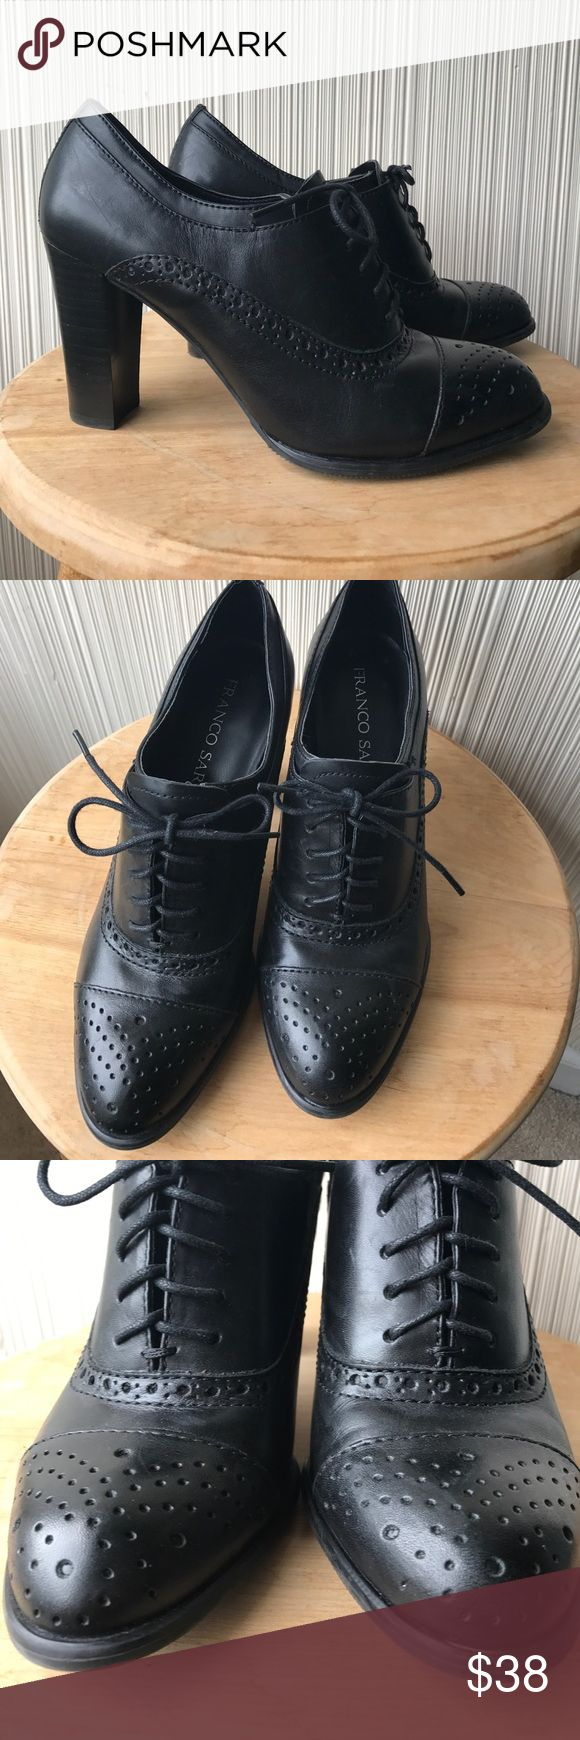 Franco Sarto Barlie Oxford NWOB. Gorgeous oxfords with perforated detailing. Lace up. Genuine leather. Franco Sarto Shoes